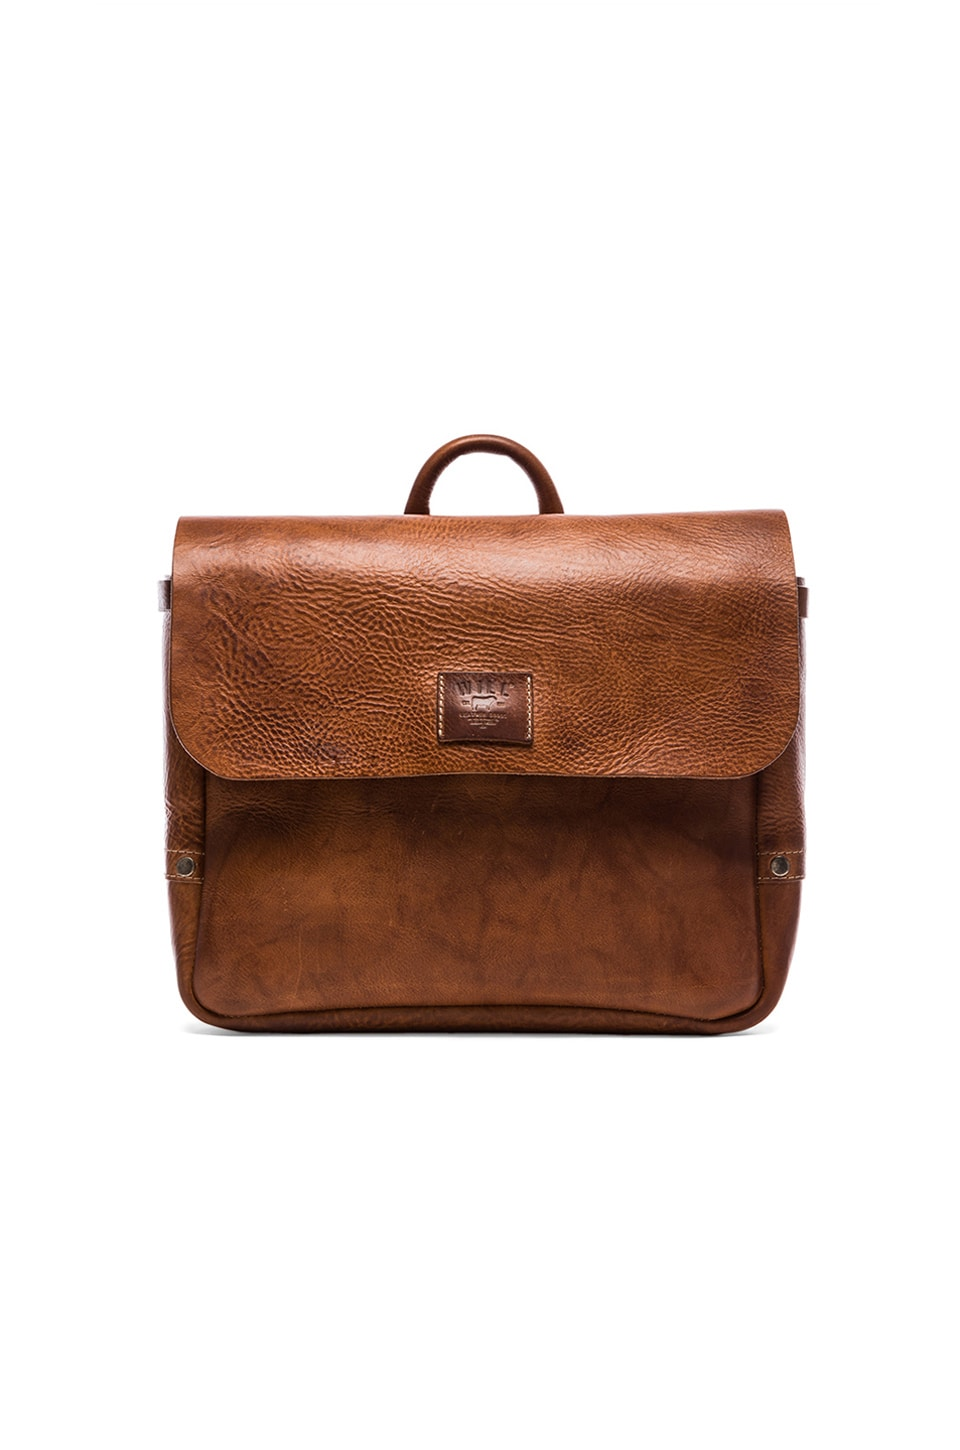 WILL Leather Goods Douglas Postal Bag in Tan